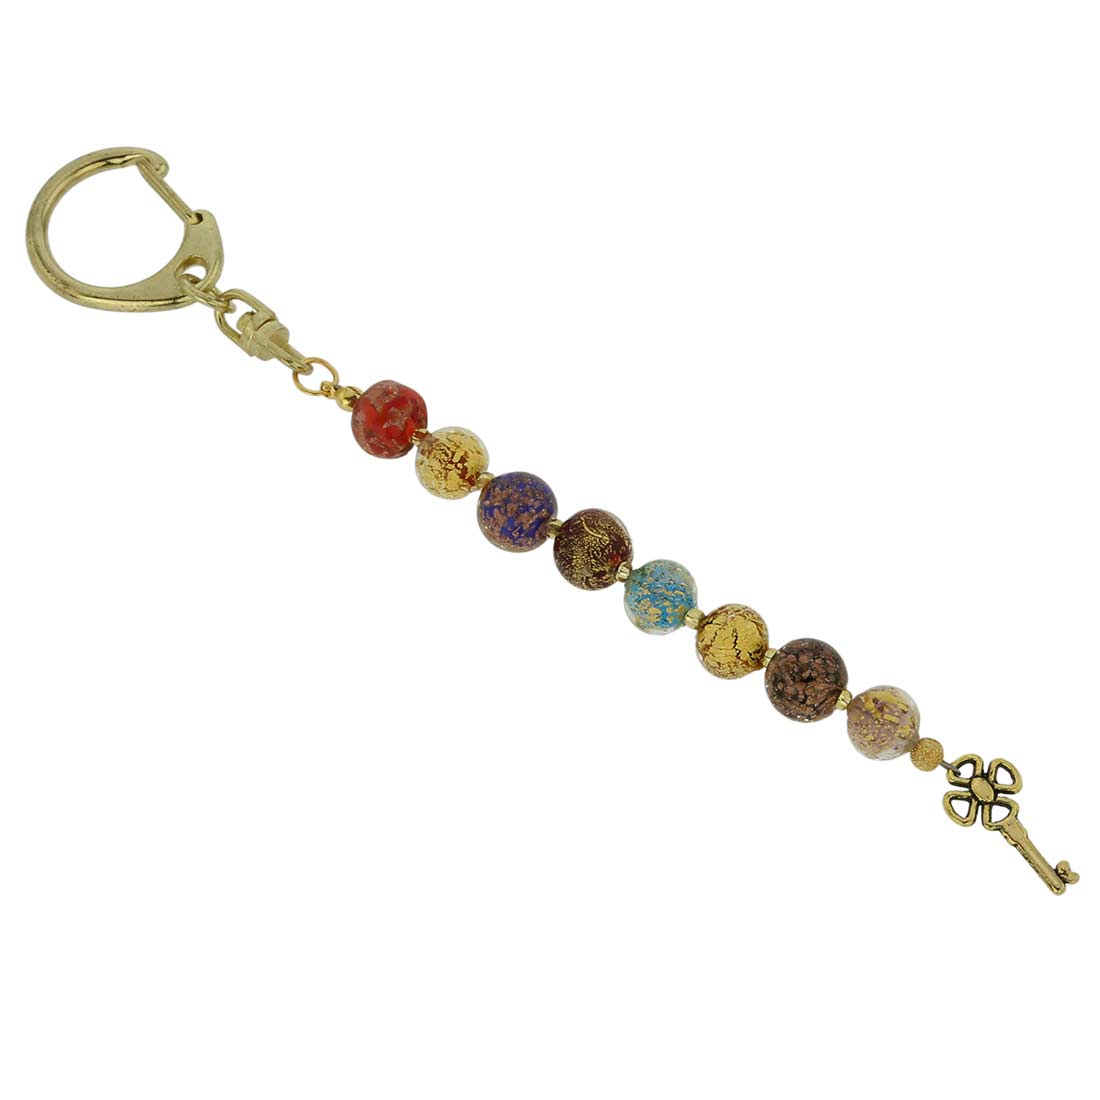 Feast of Colors Murano Keychain